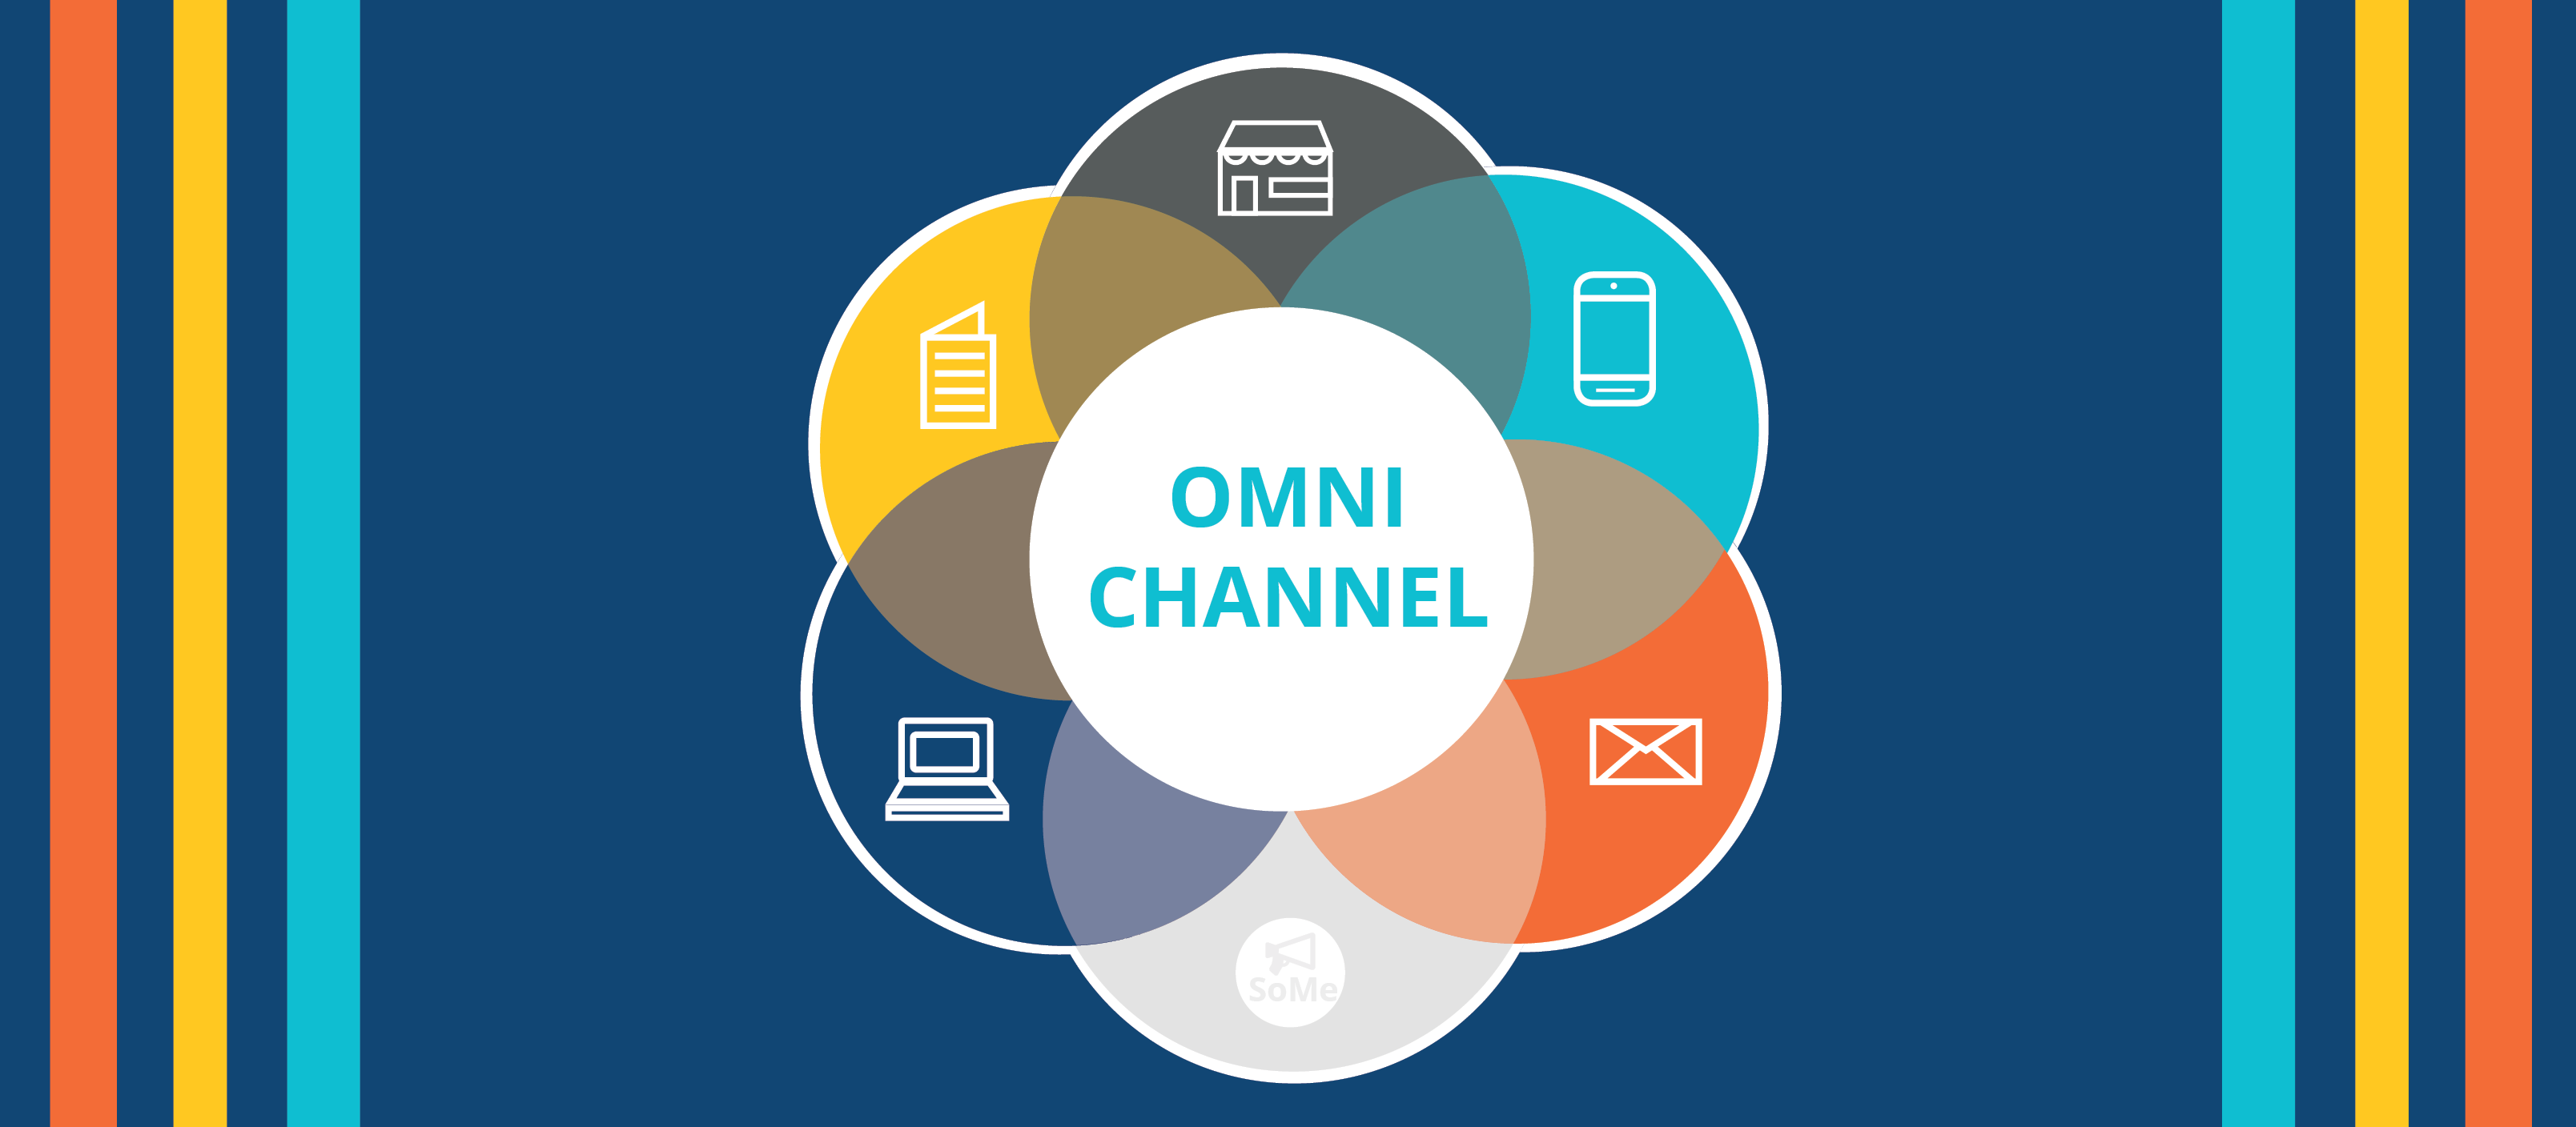 Omnichannel: A Short Introduction